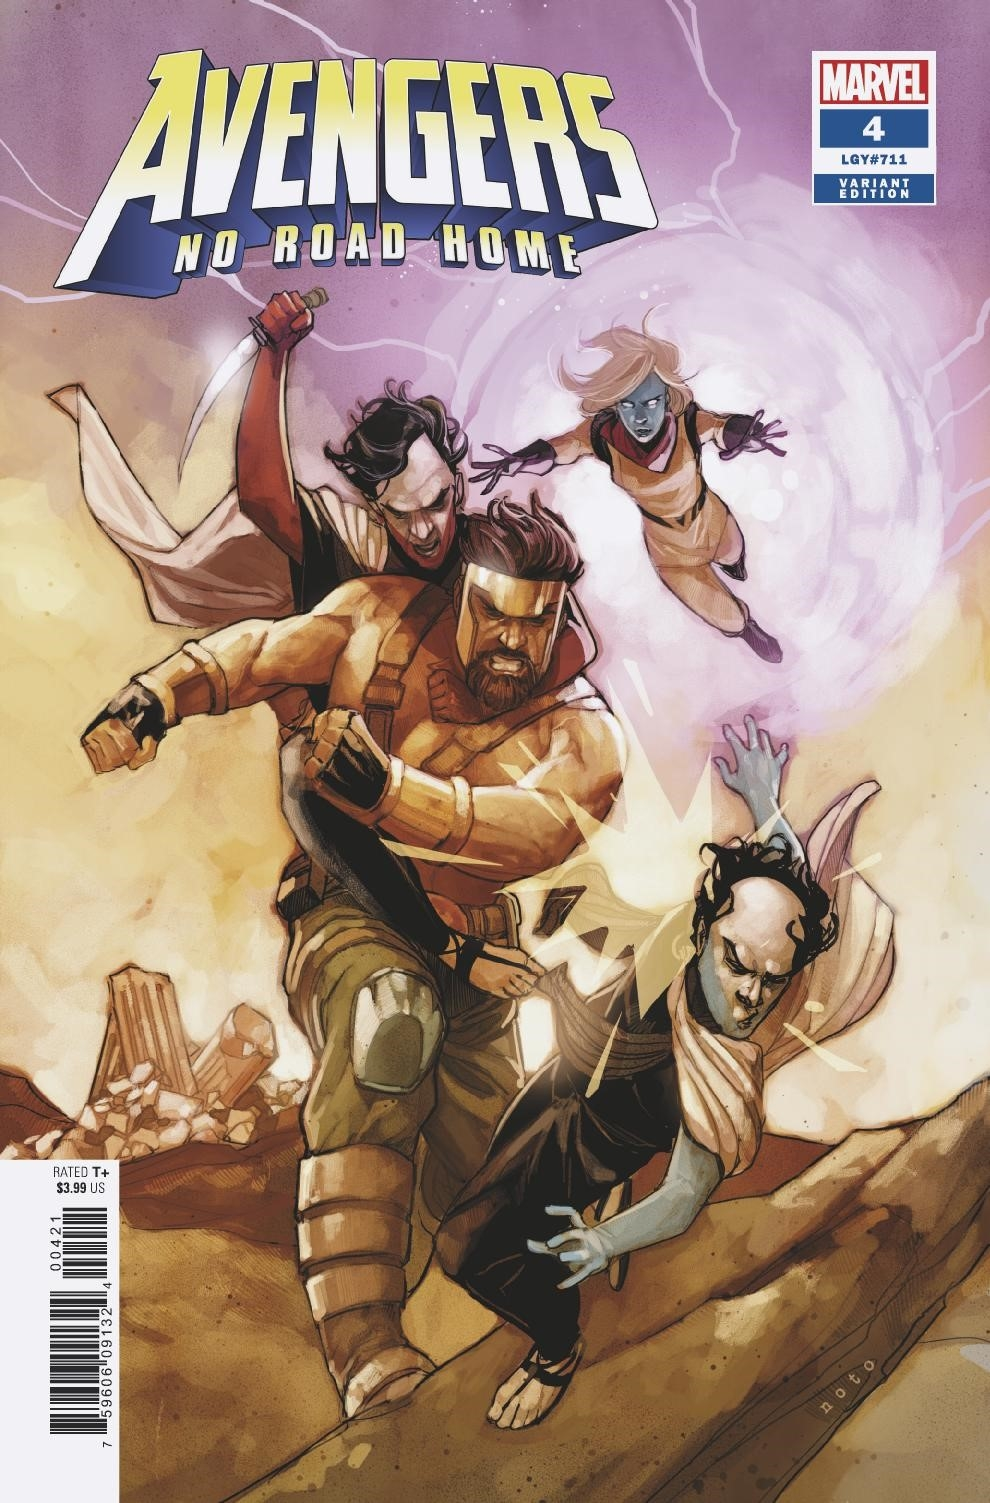 AVENGERS NO ROAD HOME #4 (OF 10) NOTO CONNECTING VAR